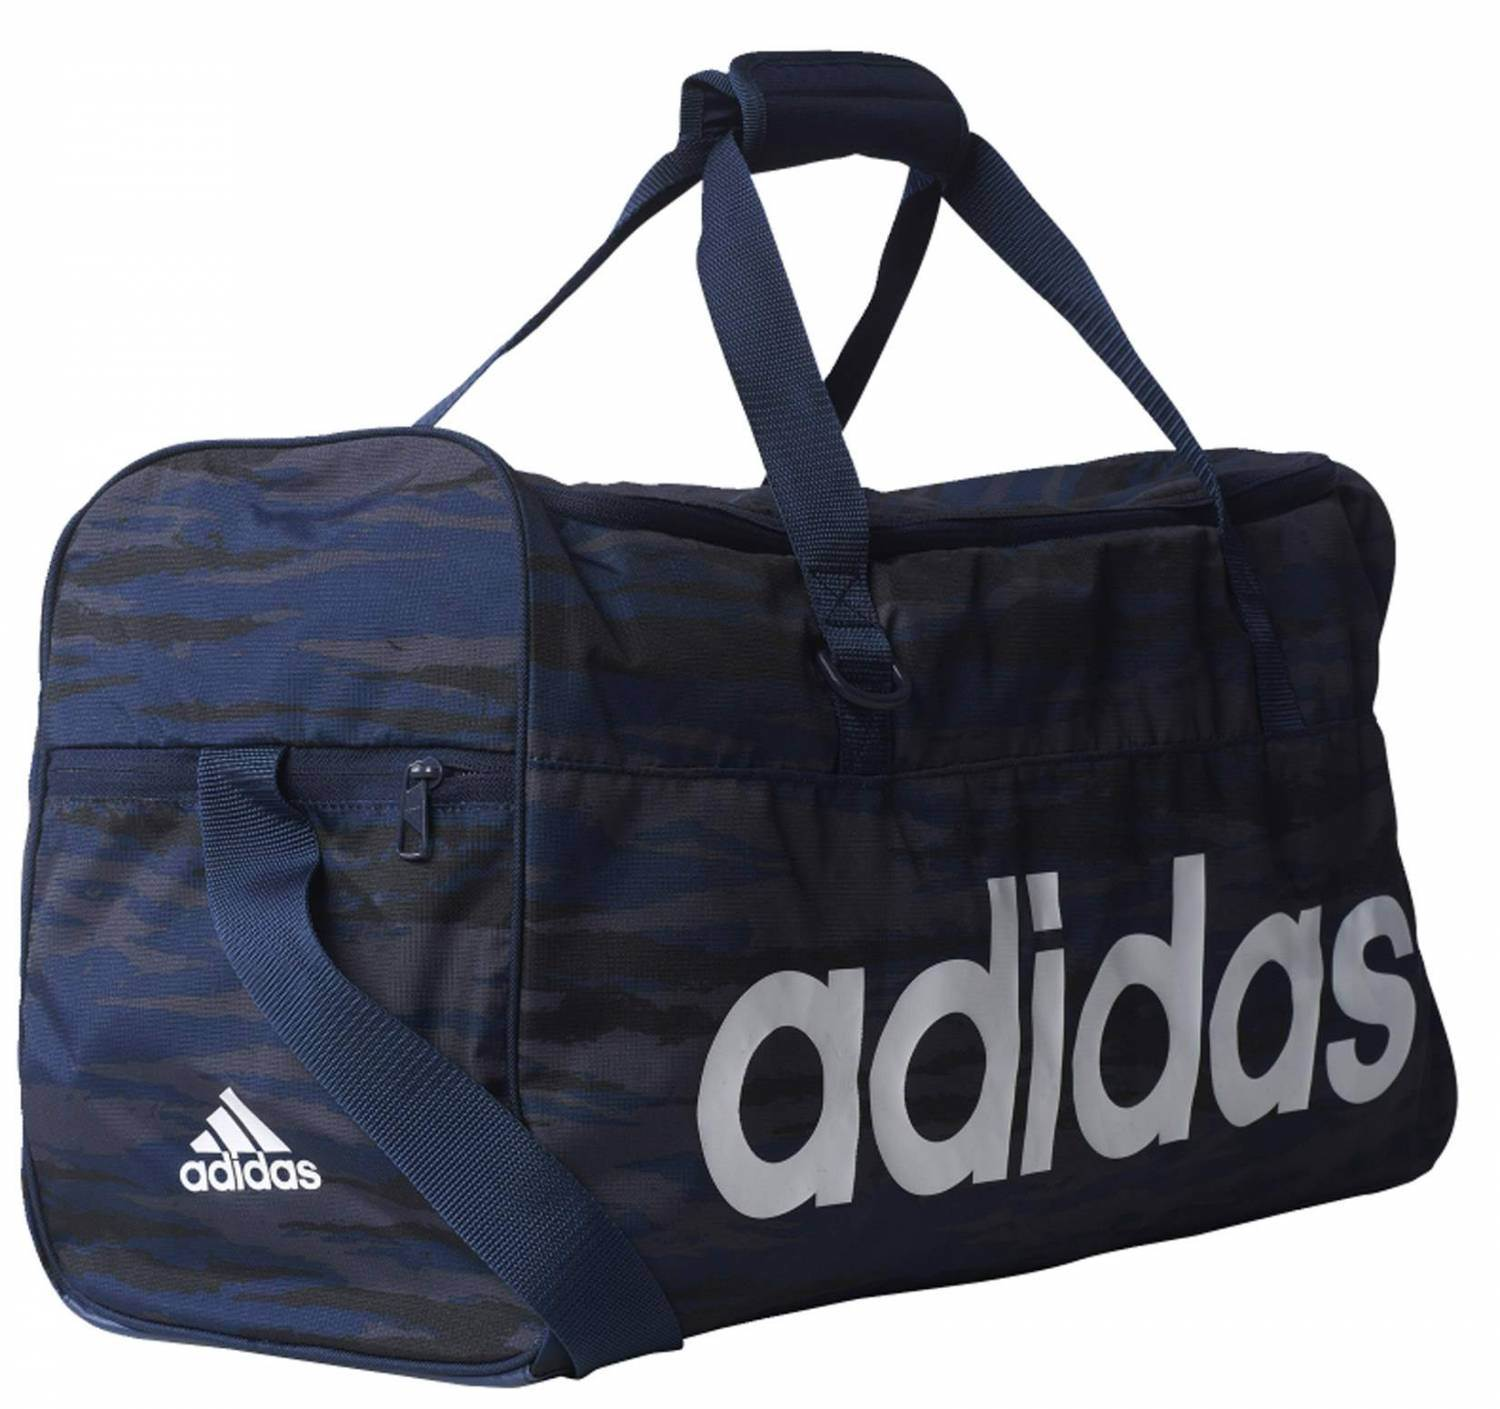 Pinnow-Heideland Angebote adidas Linear Performance Graphic Teambag Medium (Farbe: multicolor/white/white)